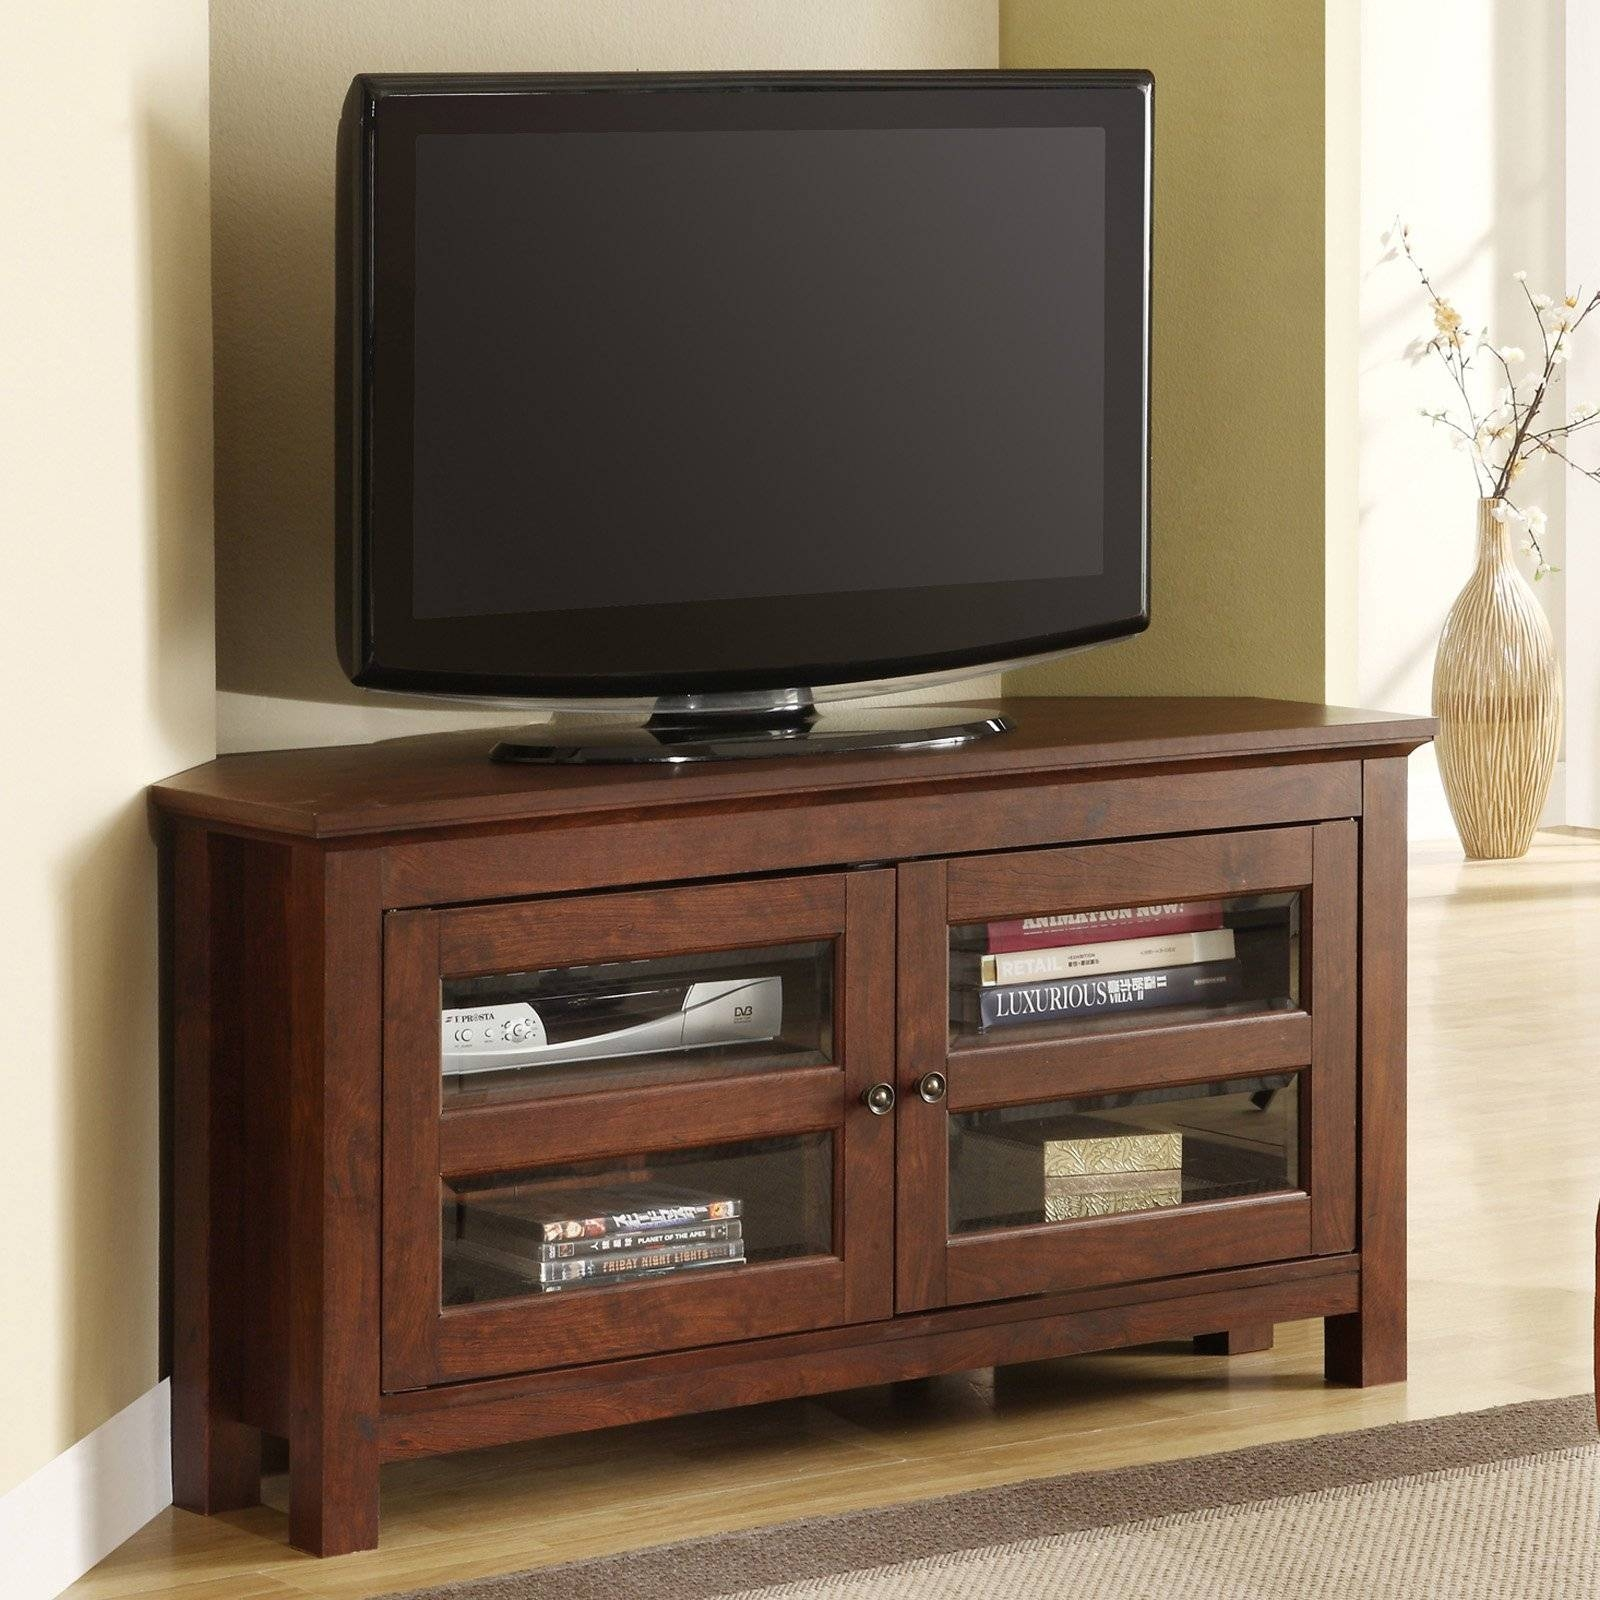 Furniture. Enclosed Tv Cabinets For Flat Screens With Doors In The pertaining to Corner Tv Cabinets For Flat Screens With Doors (Image 7 of 15)